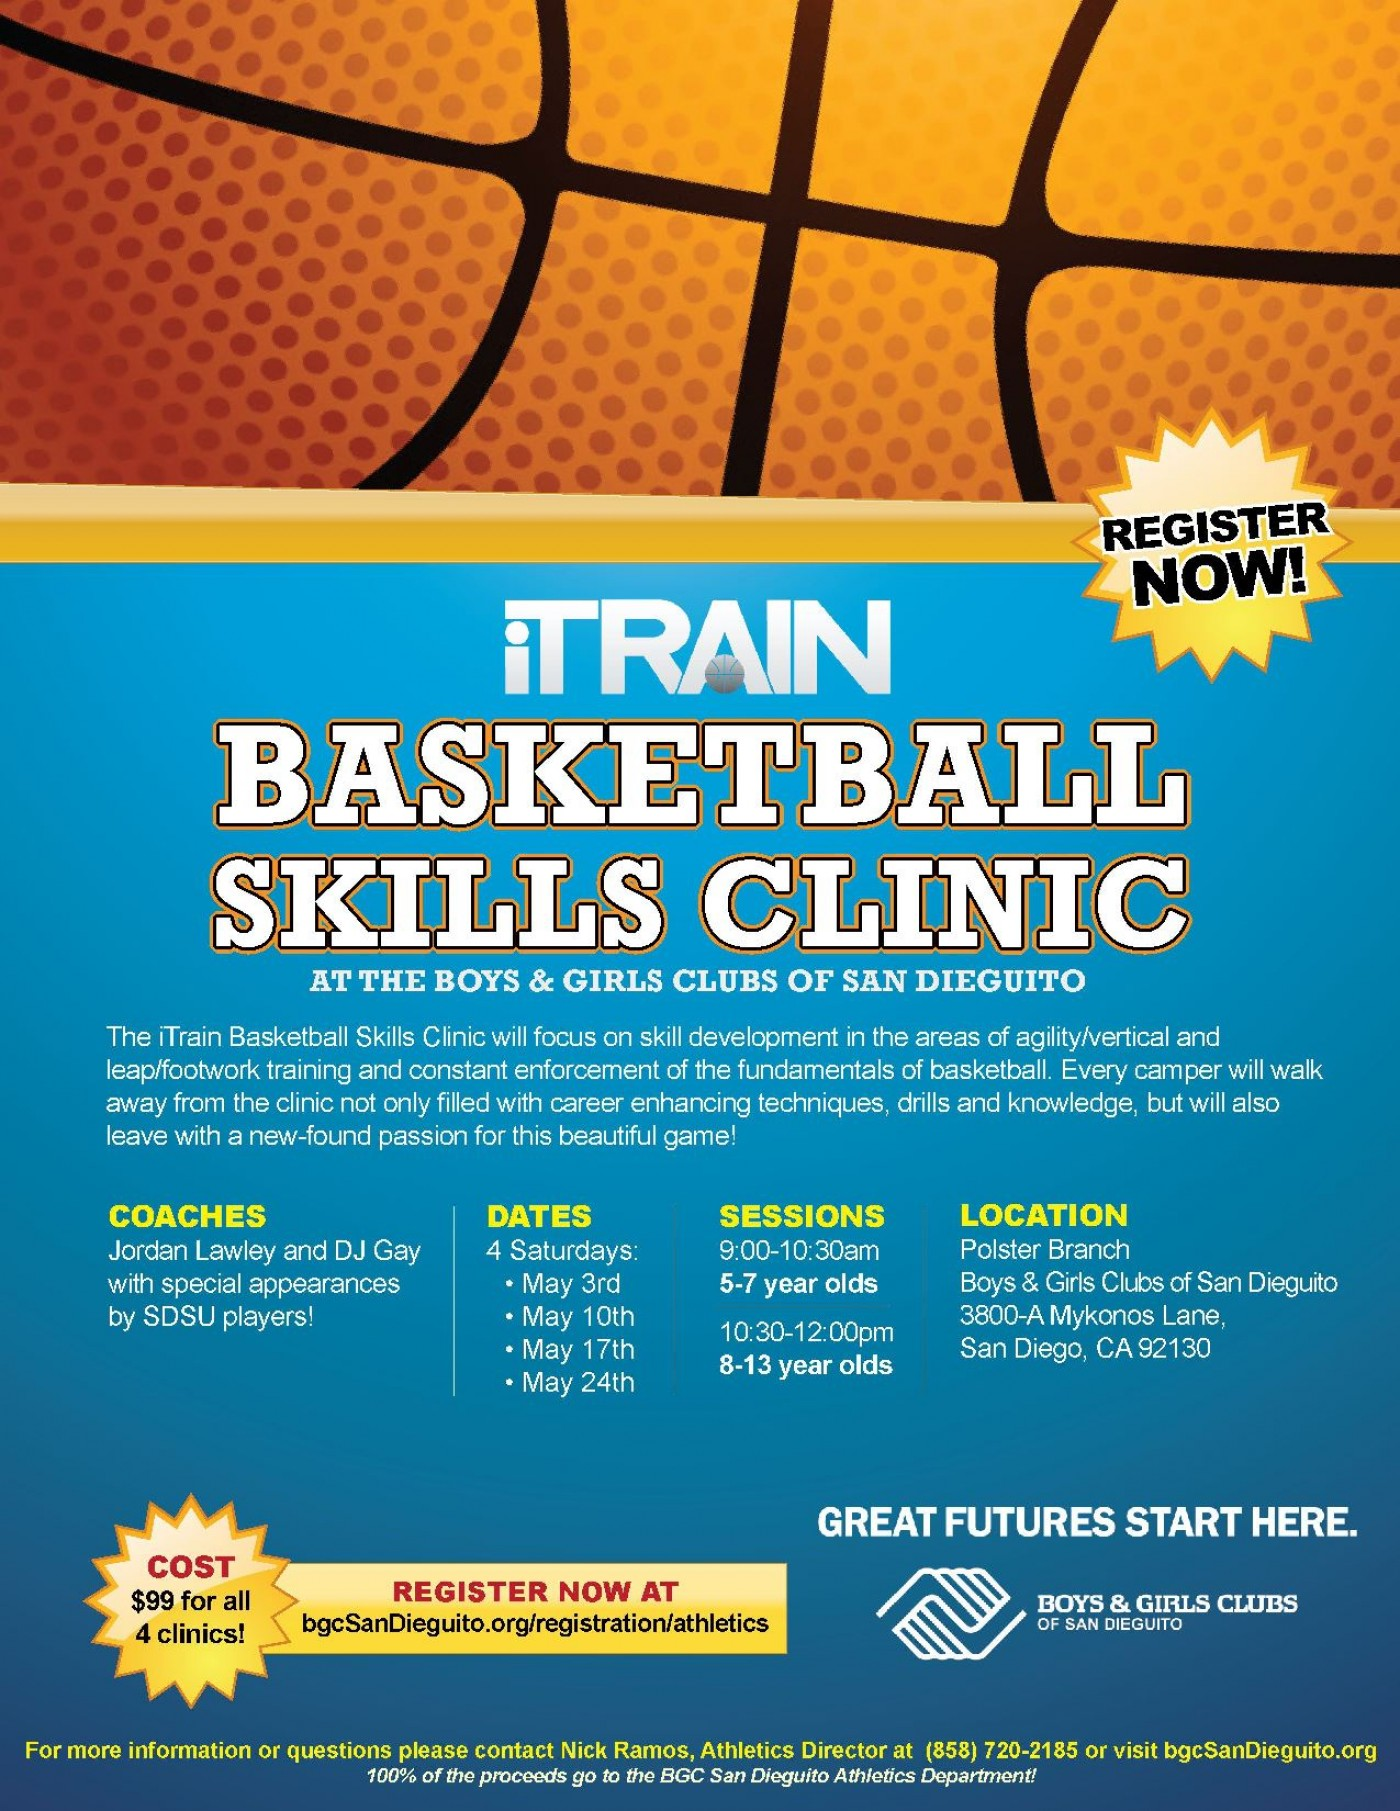 007 Breathtaking Basketball Flyer Template Free Image  Brochure Tryout Camp1400